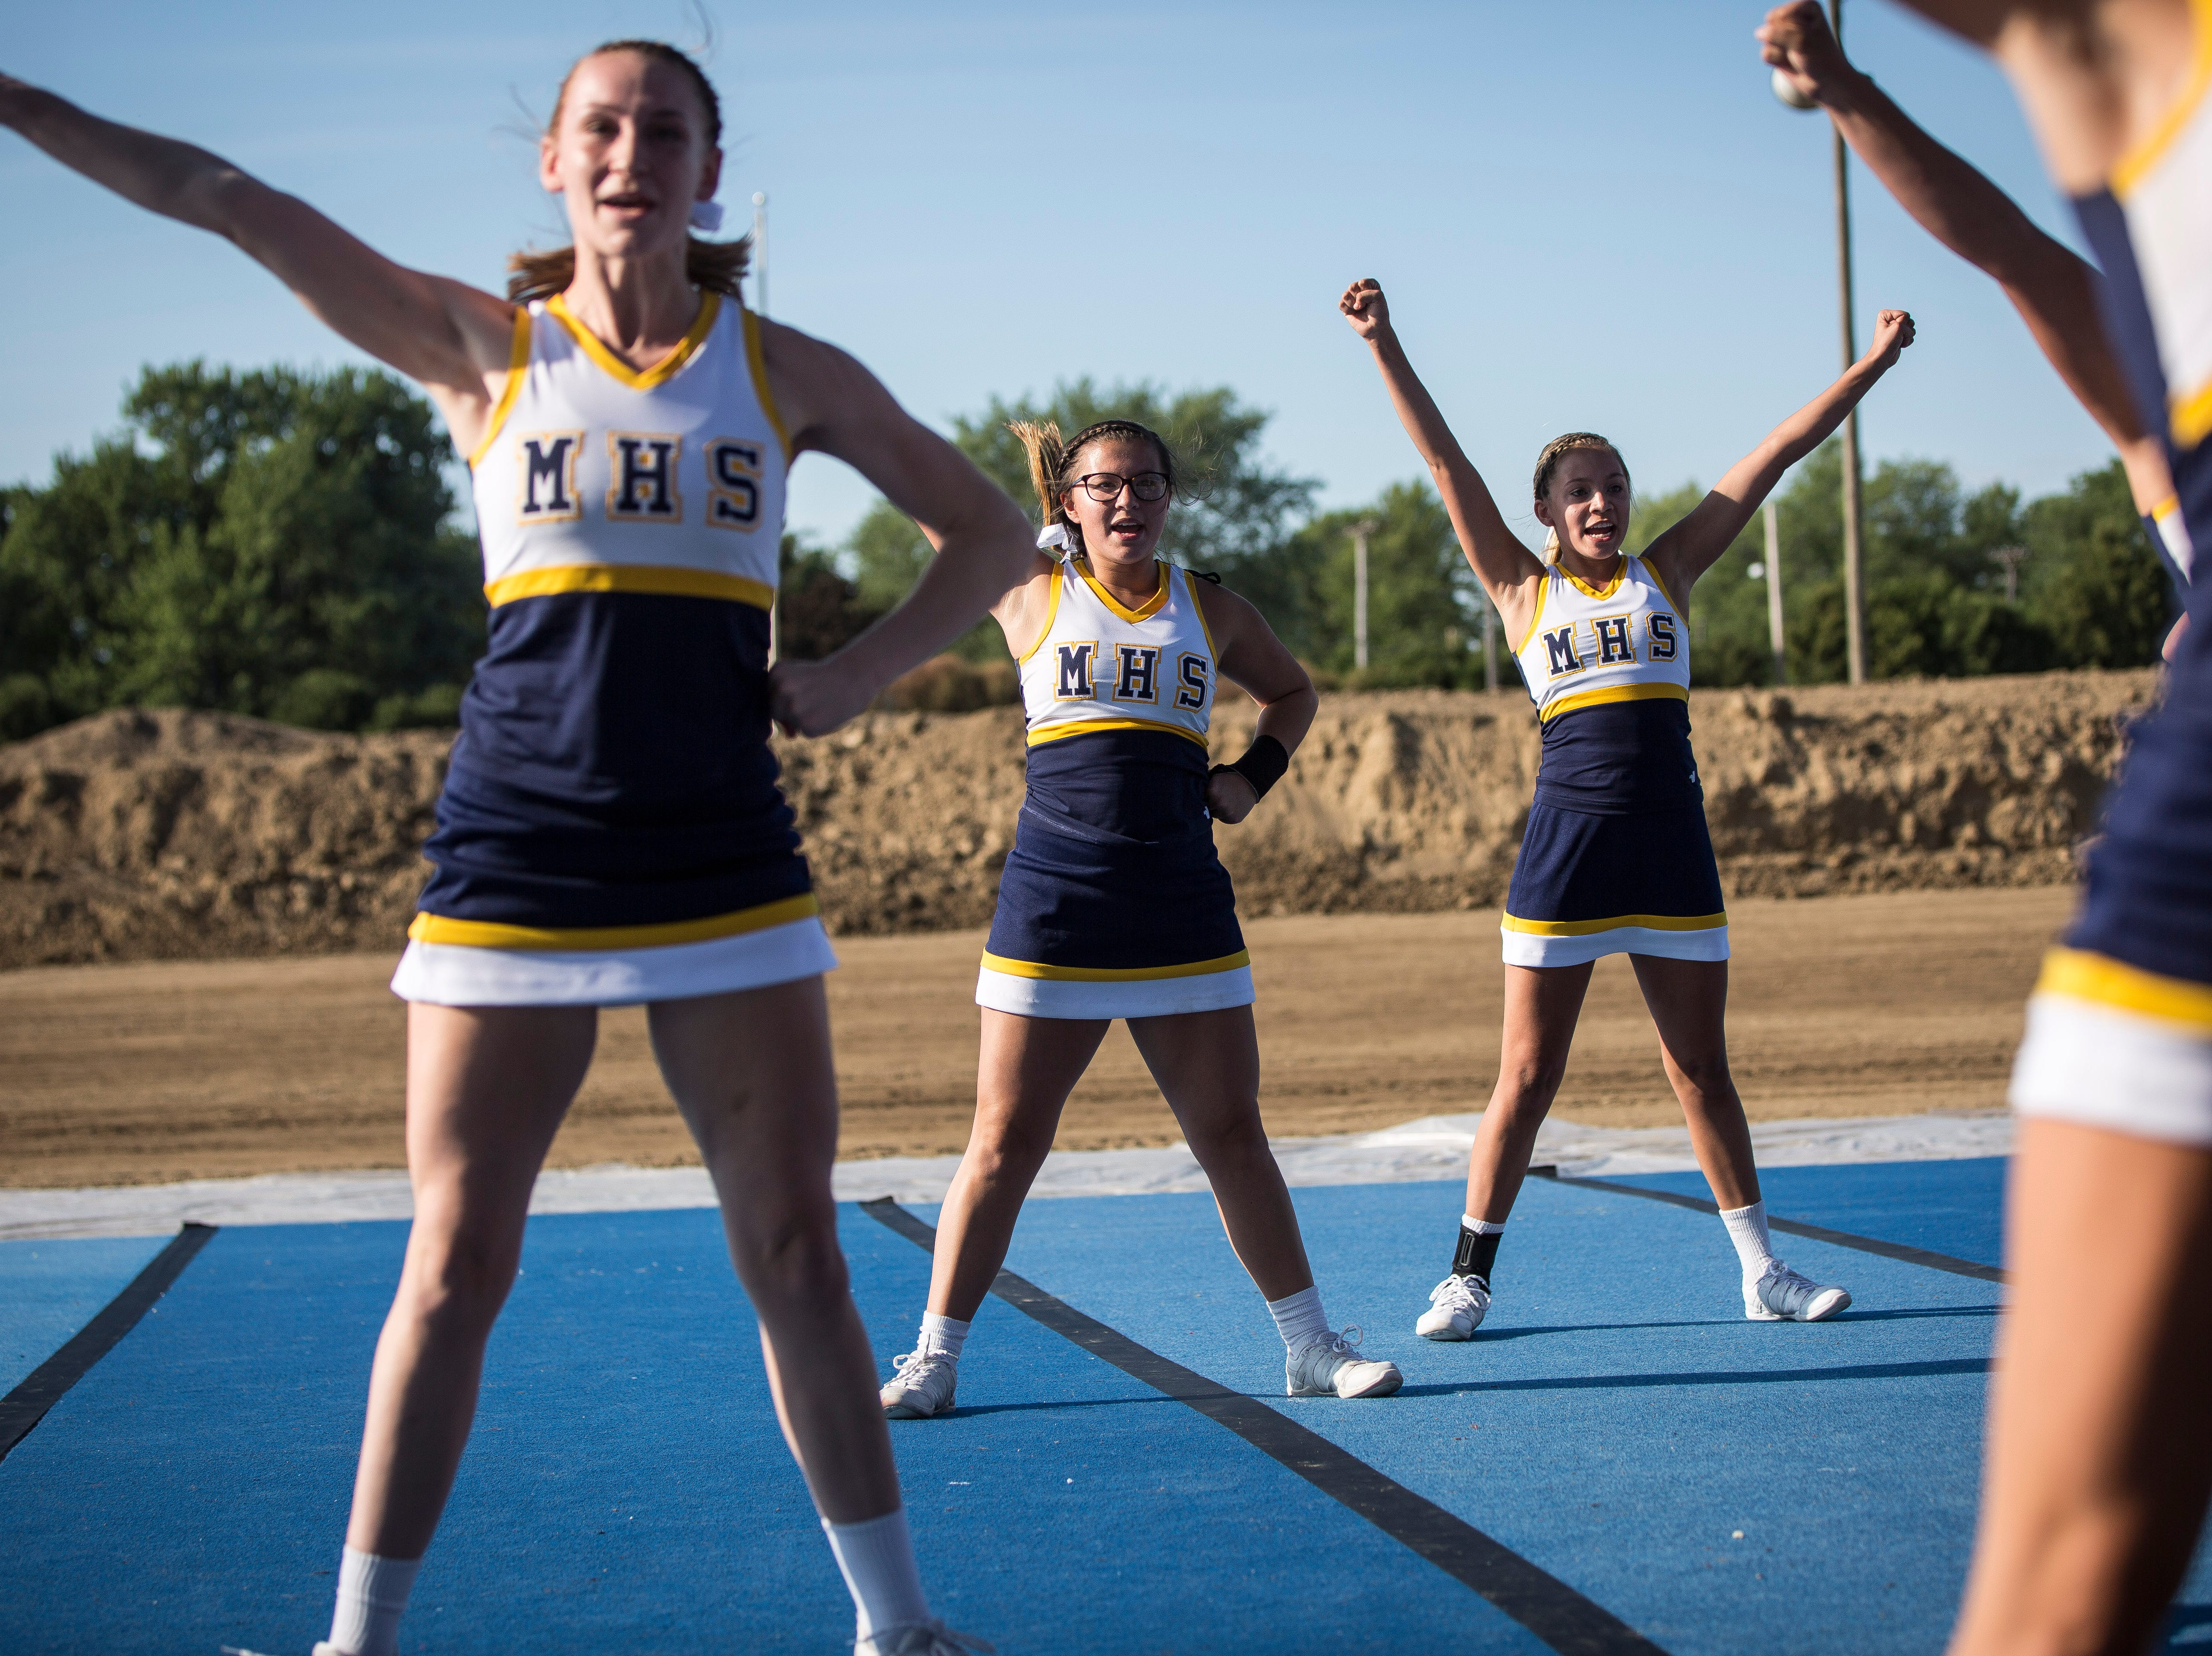 Cheerleaders from three different schools compete on Thursday at the Delaware County Fair cheerleading competition. The three schools competing were Daleville, Mooresville and Fall Creek